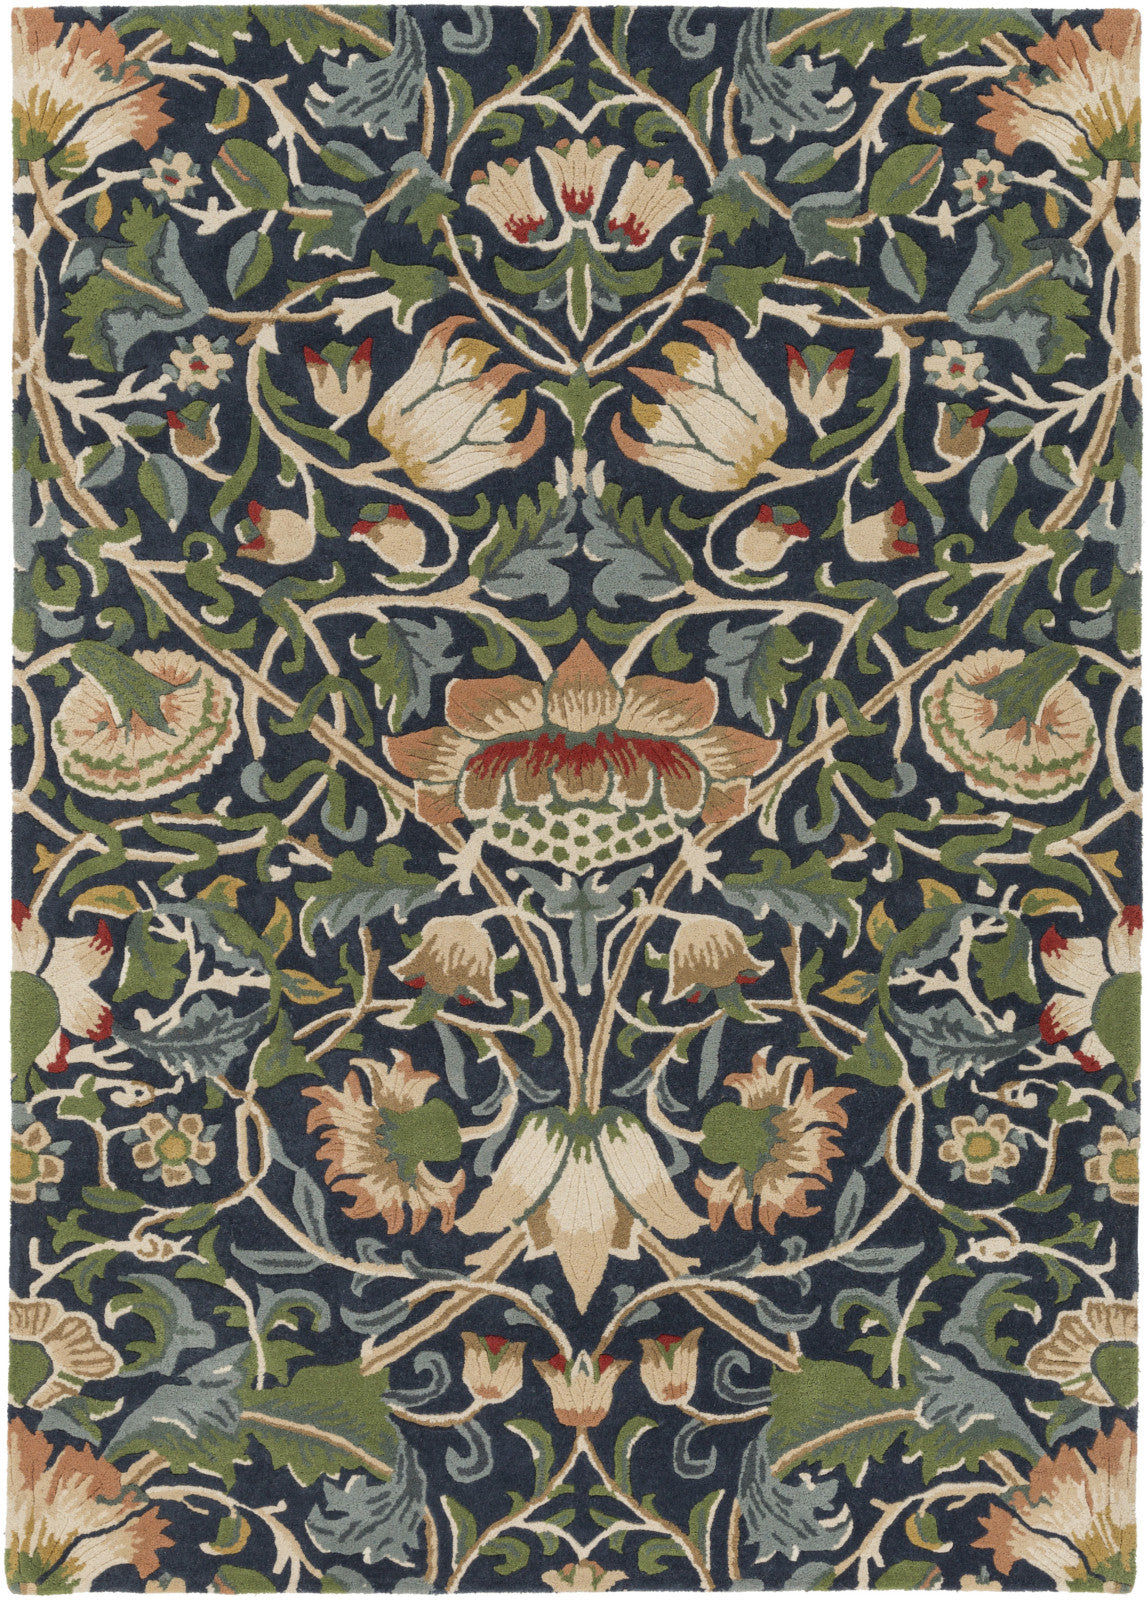 Surya WLM-3011 Blue Area Rug by William Morris main image